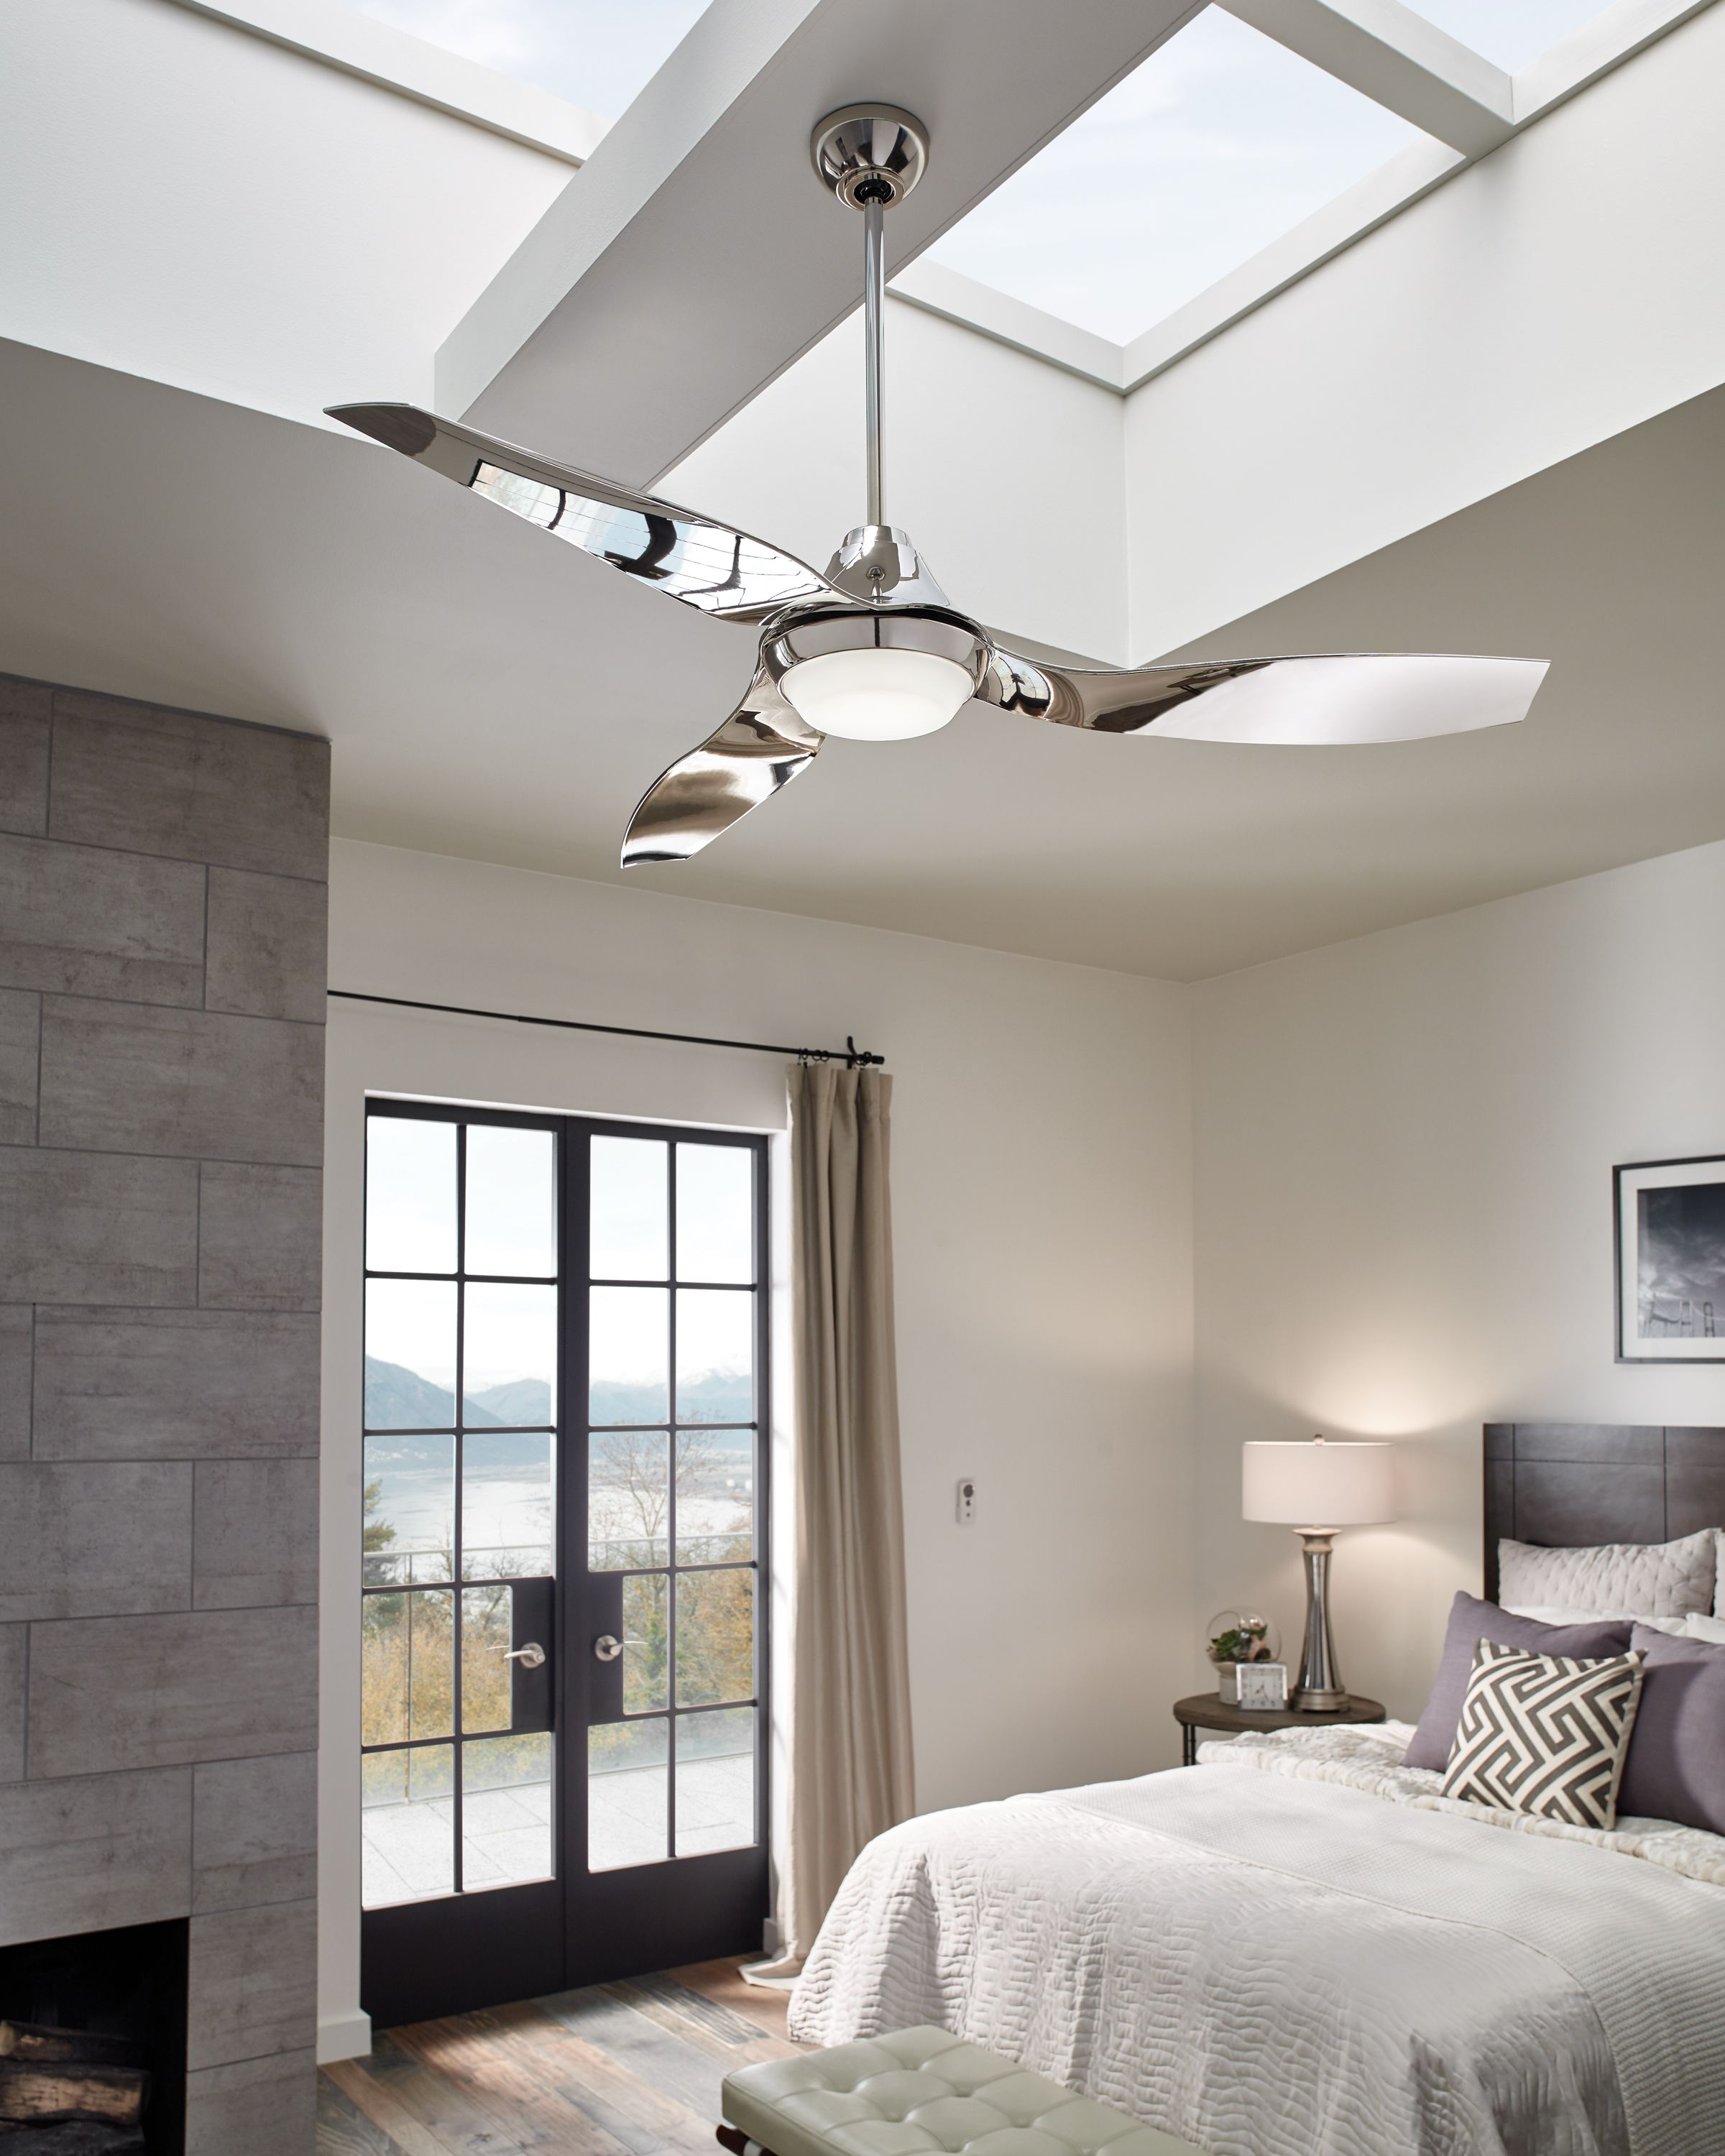 Pin by Lucy on I spy House designs! Ceiling fan bedroom